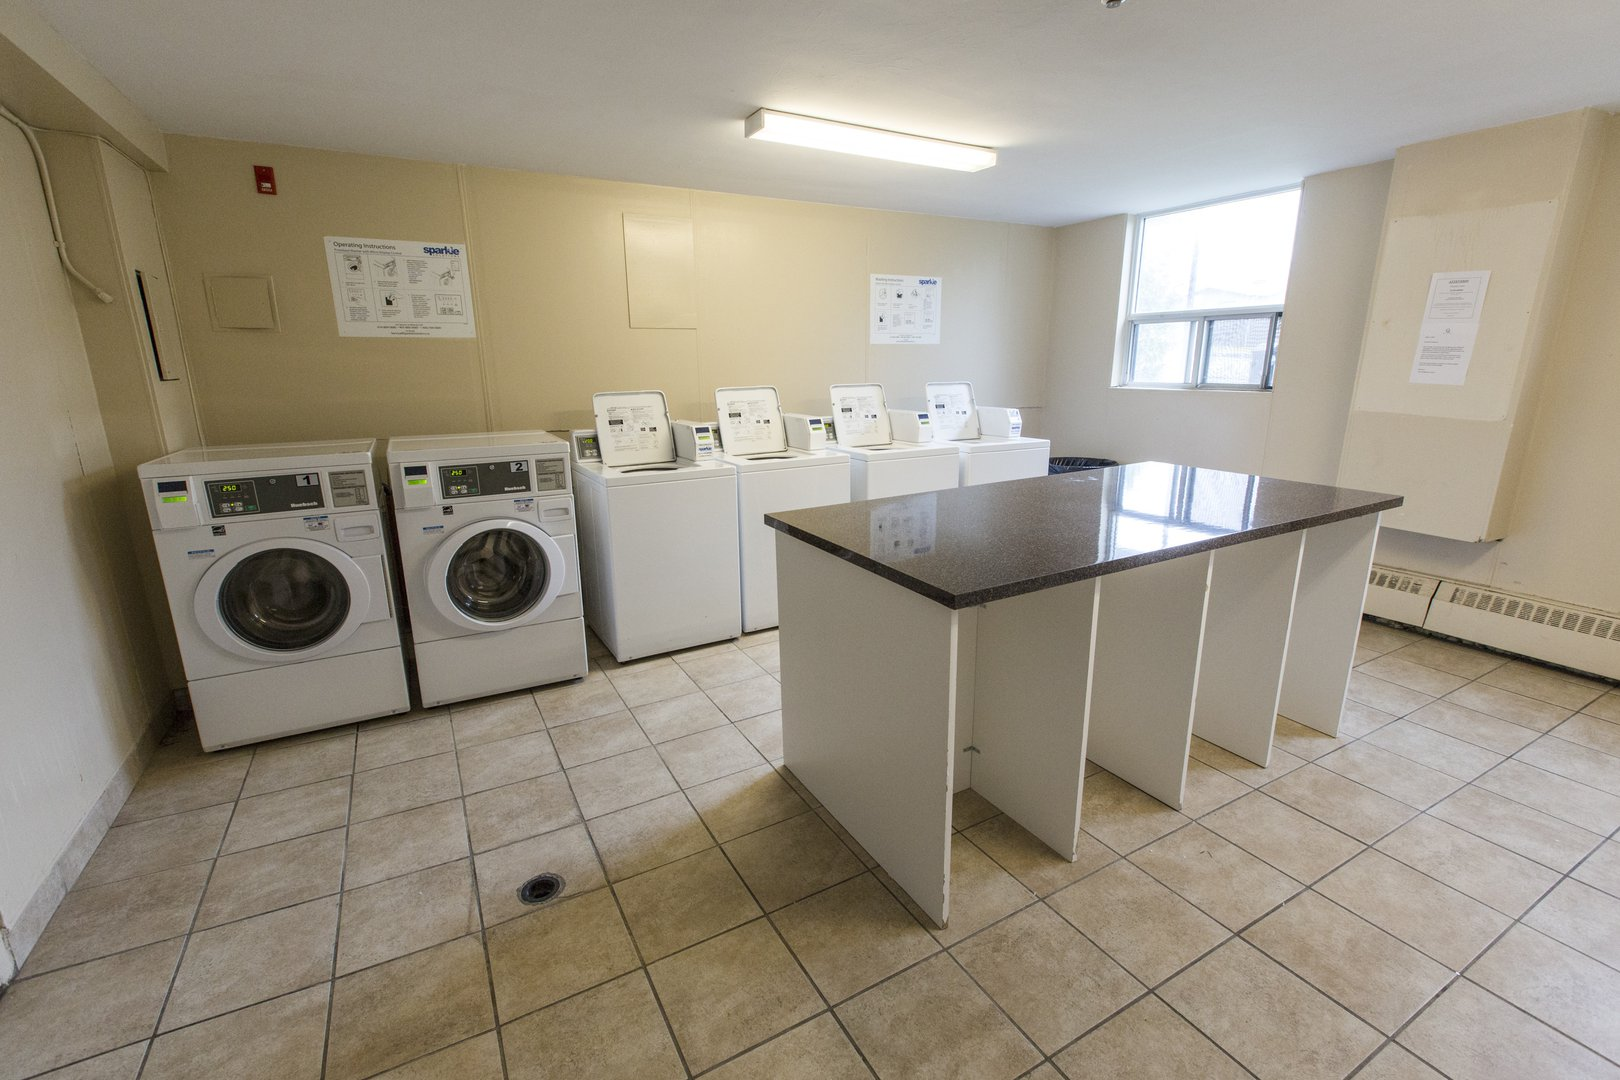 Apartment for rent at 33 Kennedy Rd S, Brampton, ON. This is the laundry room with natural light and tile floor.